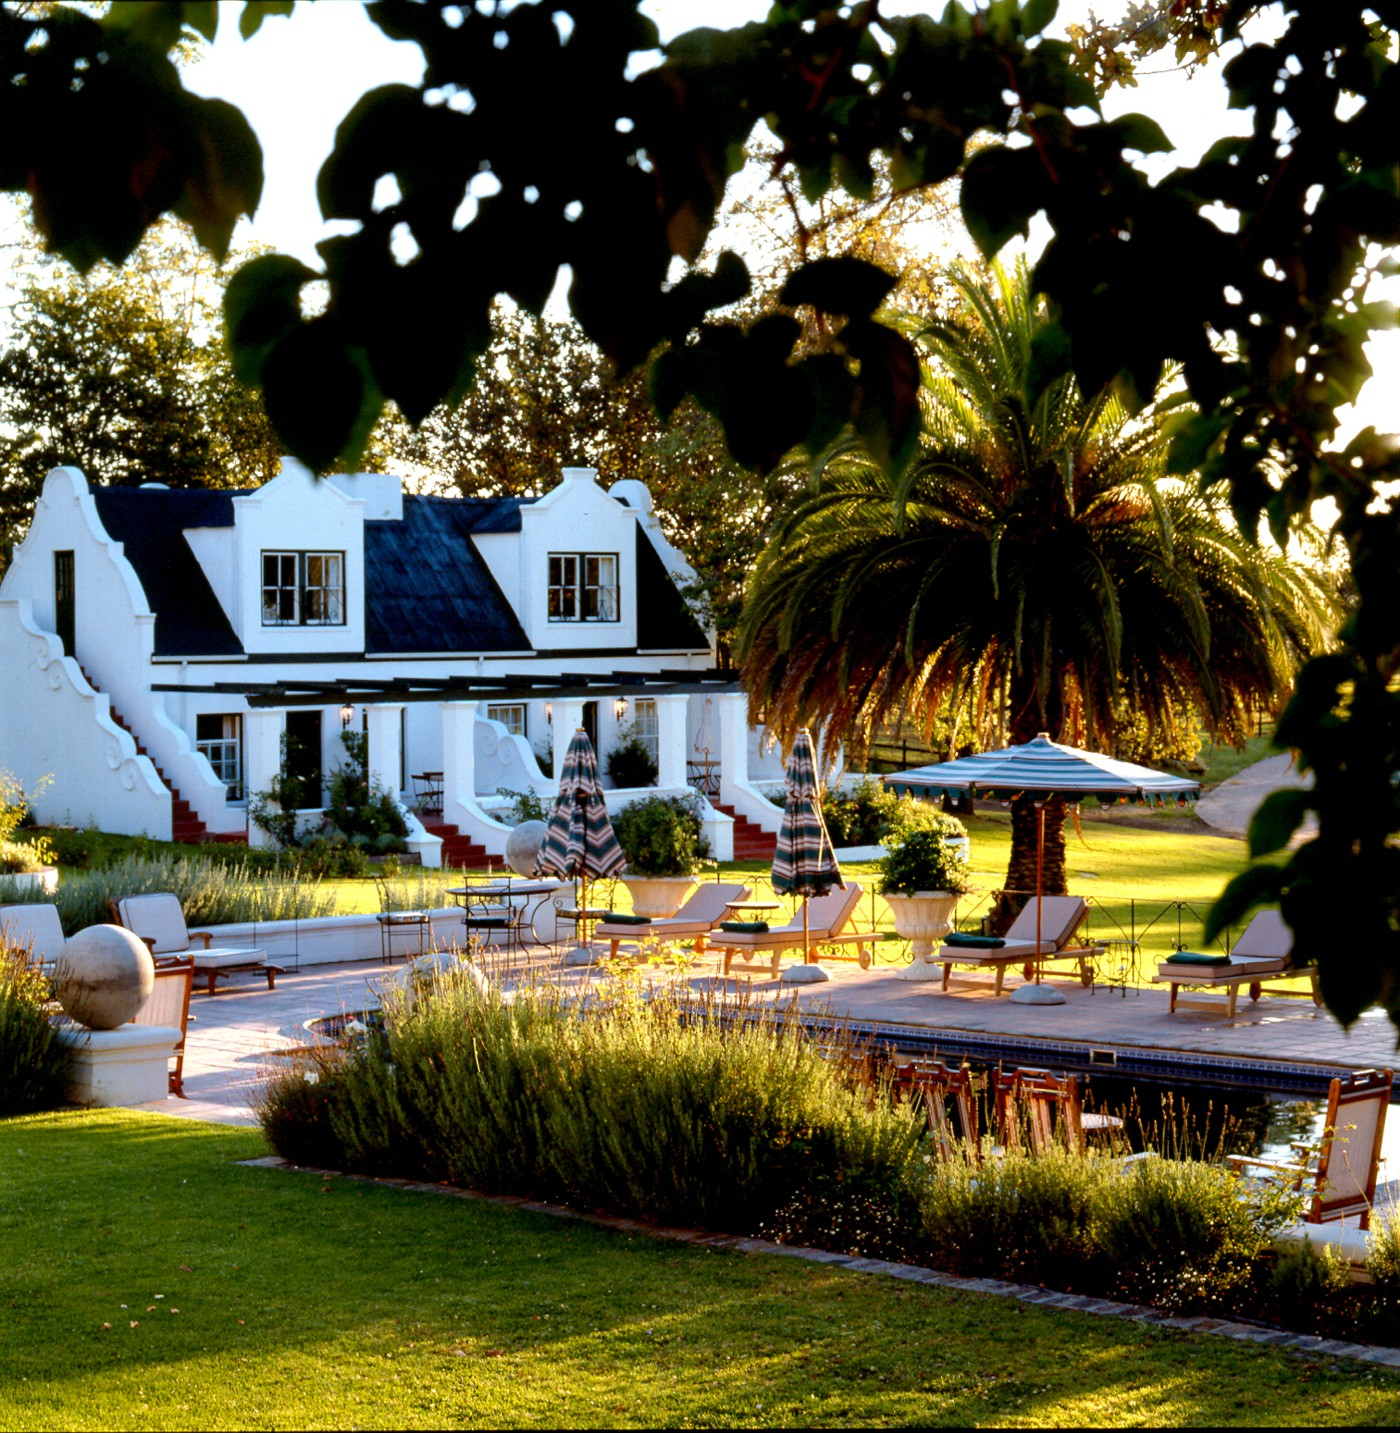 Kurland Hotel In The Crags Plettenberg Bay 5 Star Plett Tourism Accommodation Events Festivals Restaurants And Activities